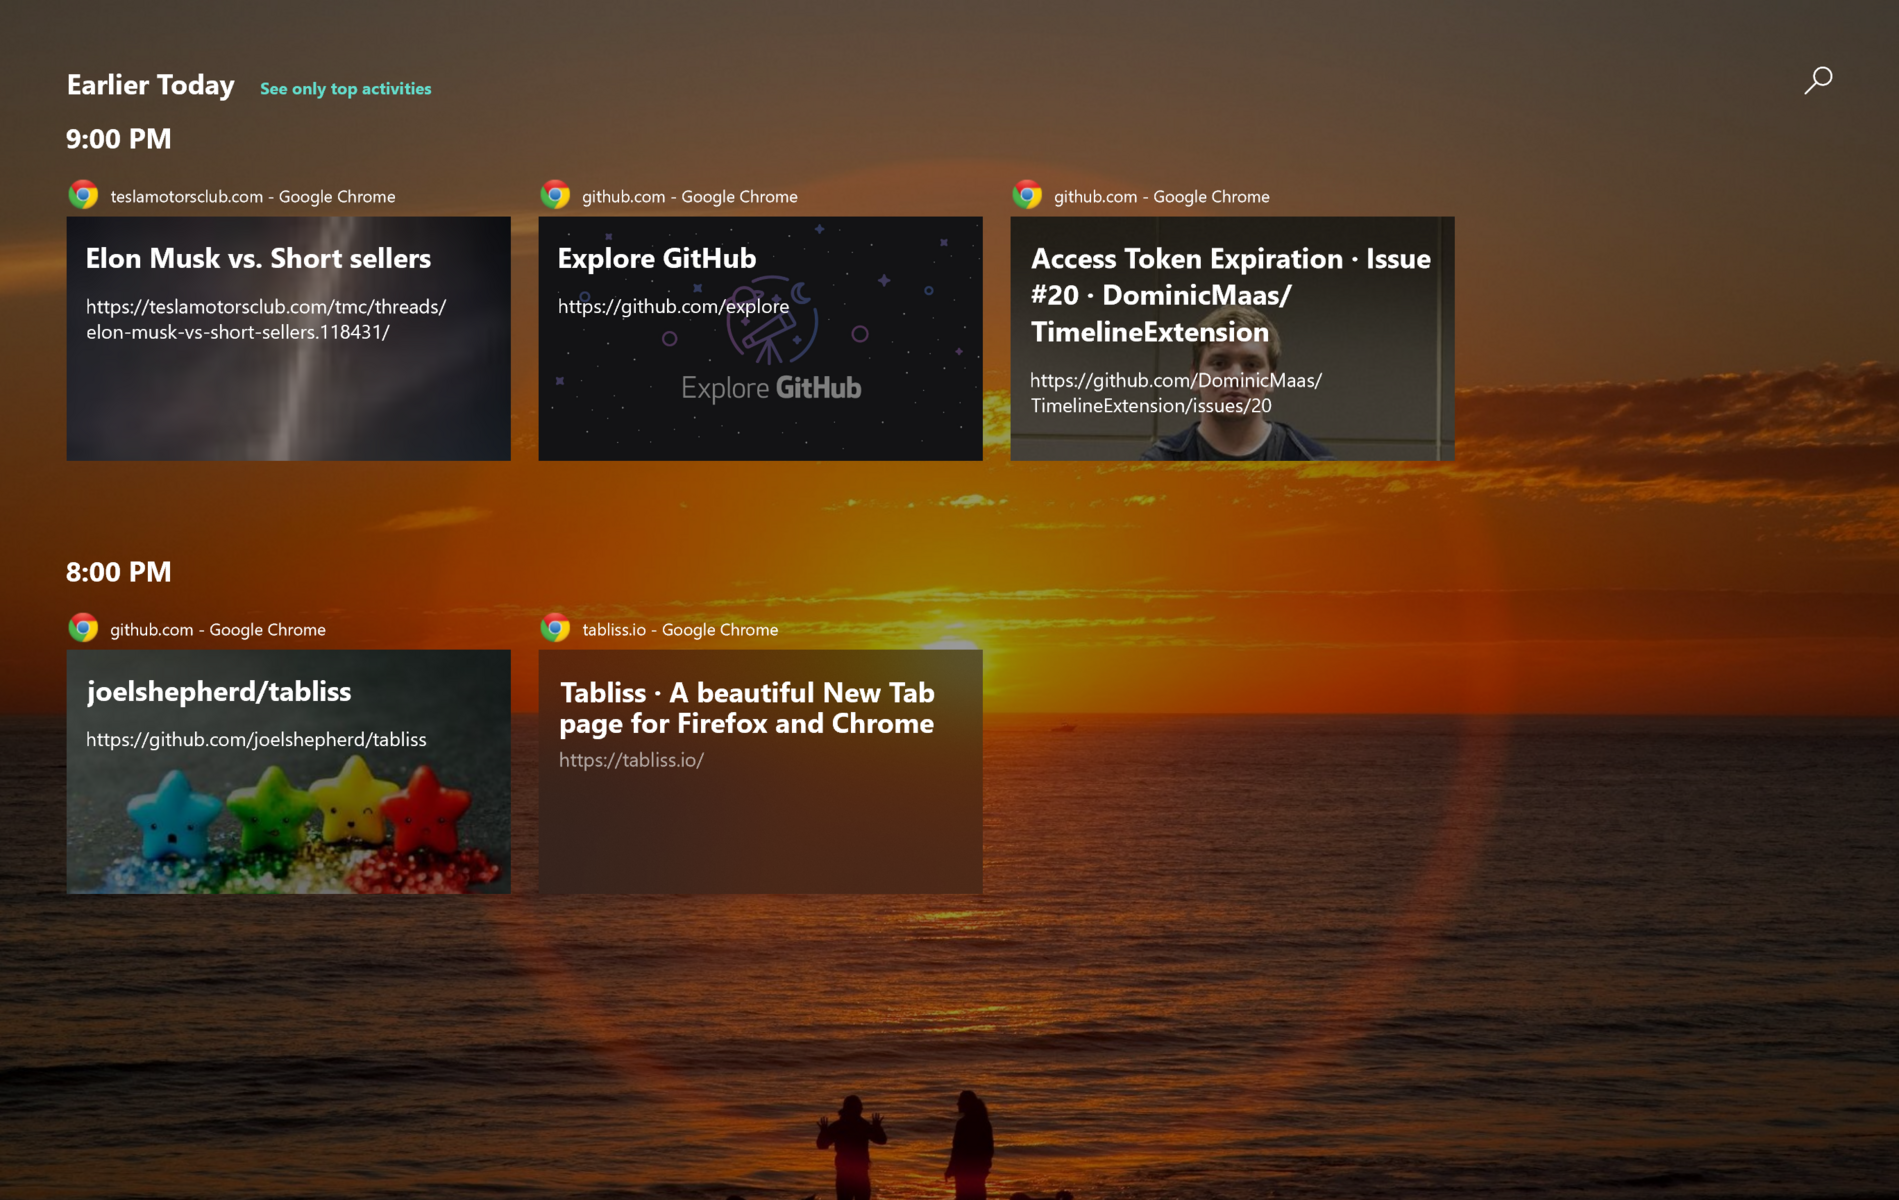 Windows Timeline Third-Party Extensive Lands on Firefox